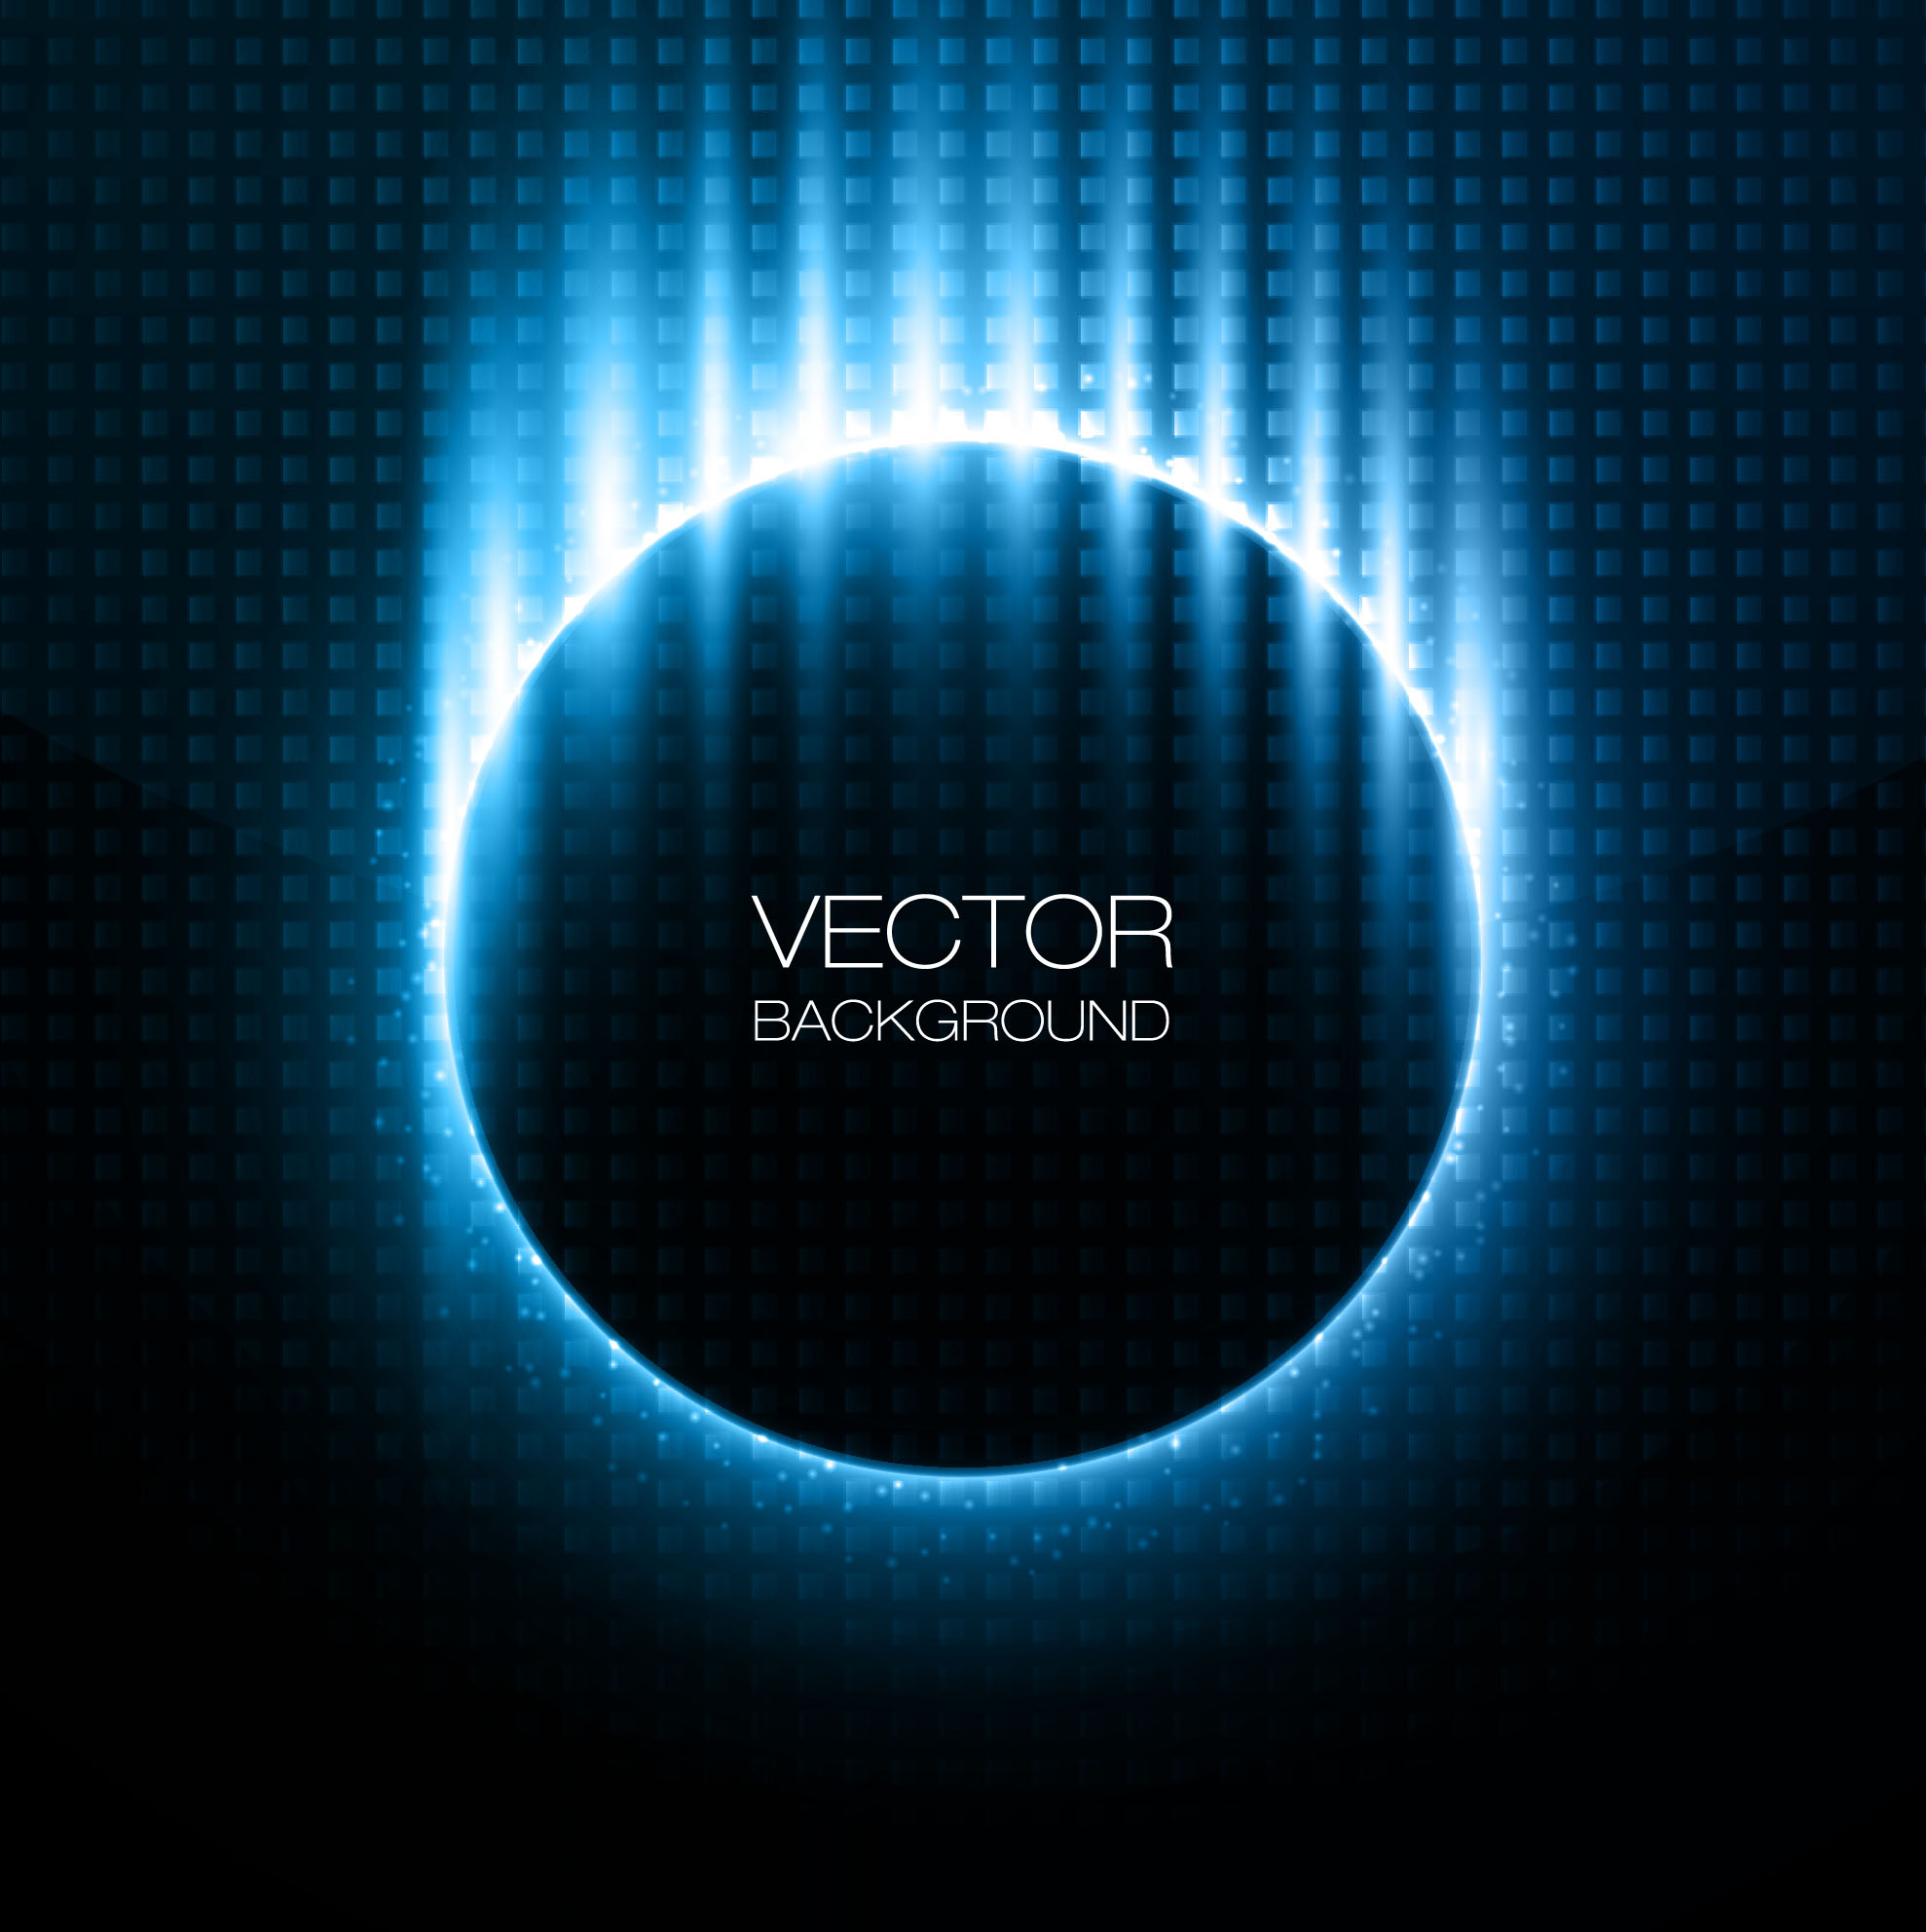 futuristic vector background - photo #1